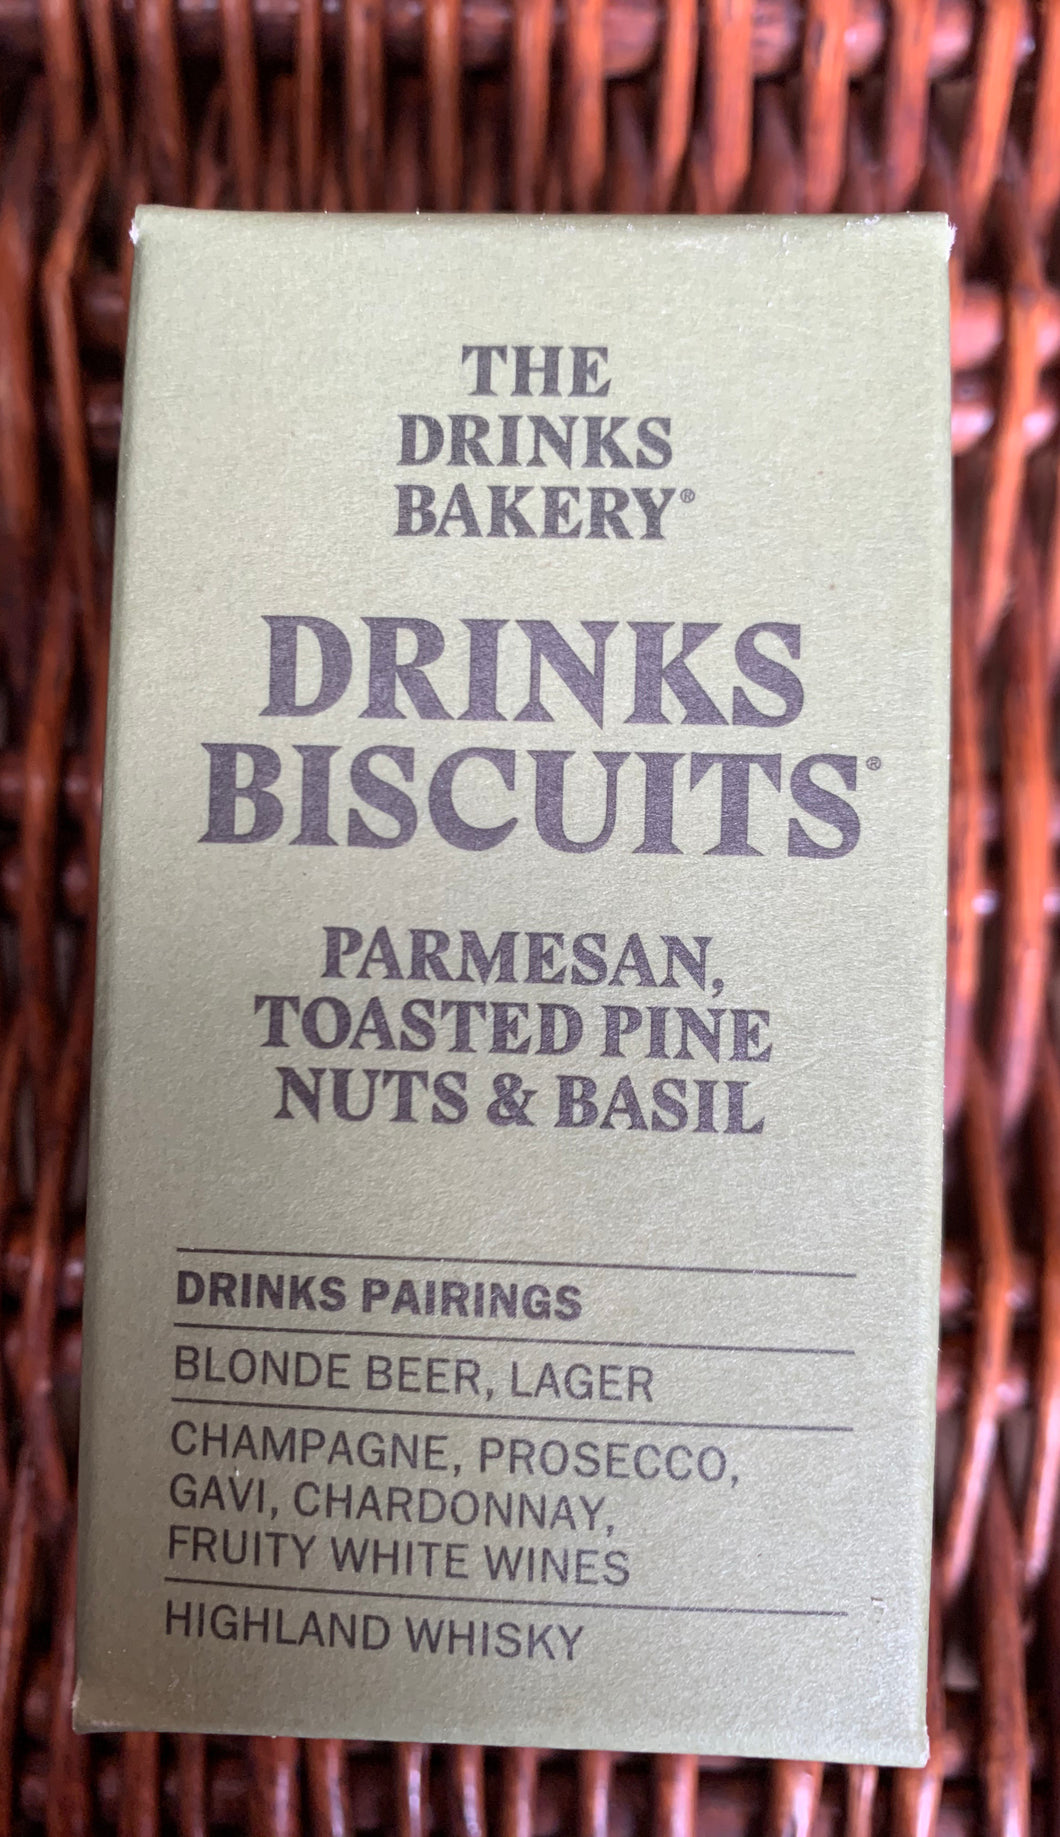 The Drinks Bakery - Parmesan, Toast Pinenut & Basil Biscuits 36g